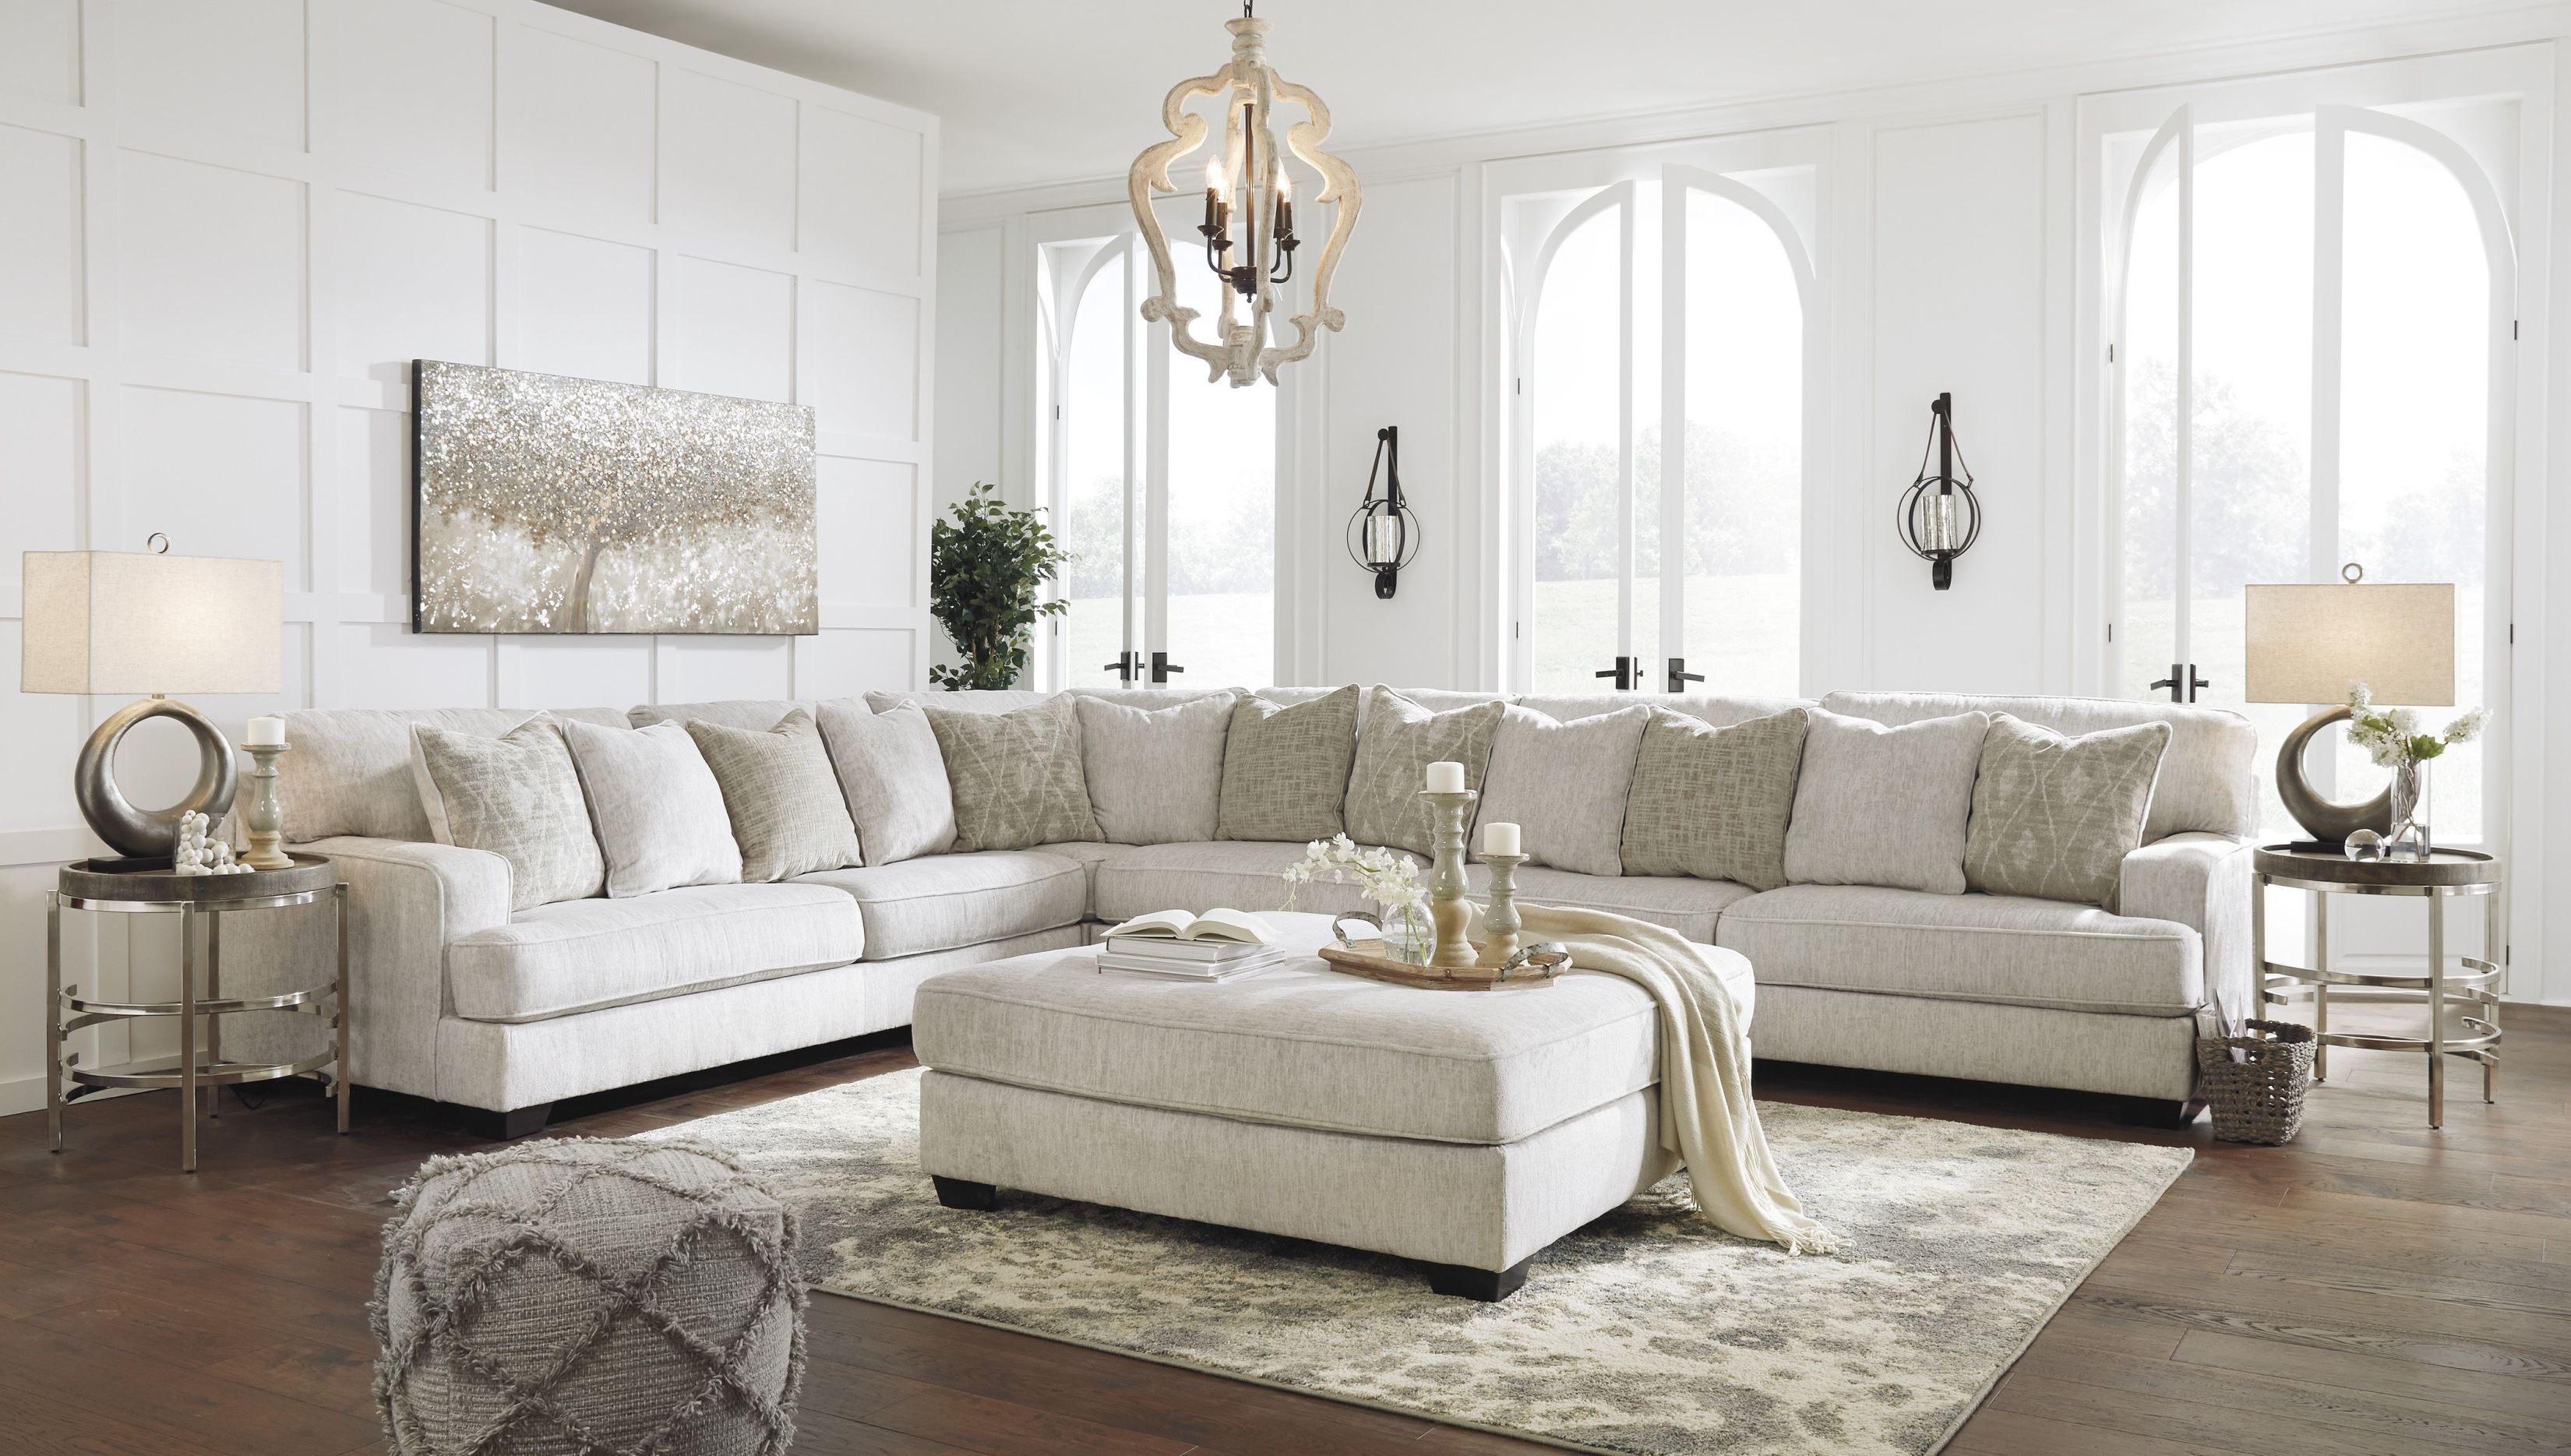 Rawcliffe Parchment 4 Piece Raf Sectional Asl 1960446 1960466 1960467 1960477 In 2020 Living Room Sectional Living Room White Furniture